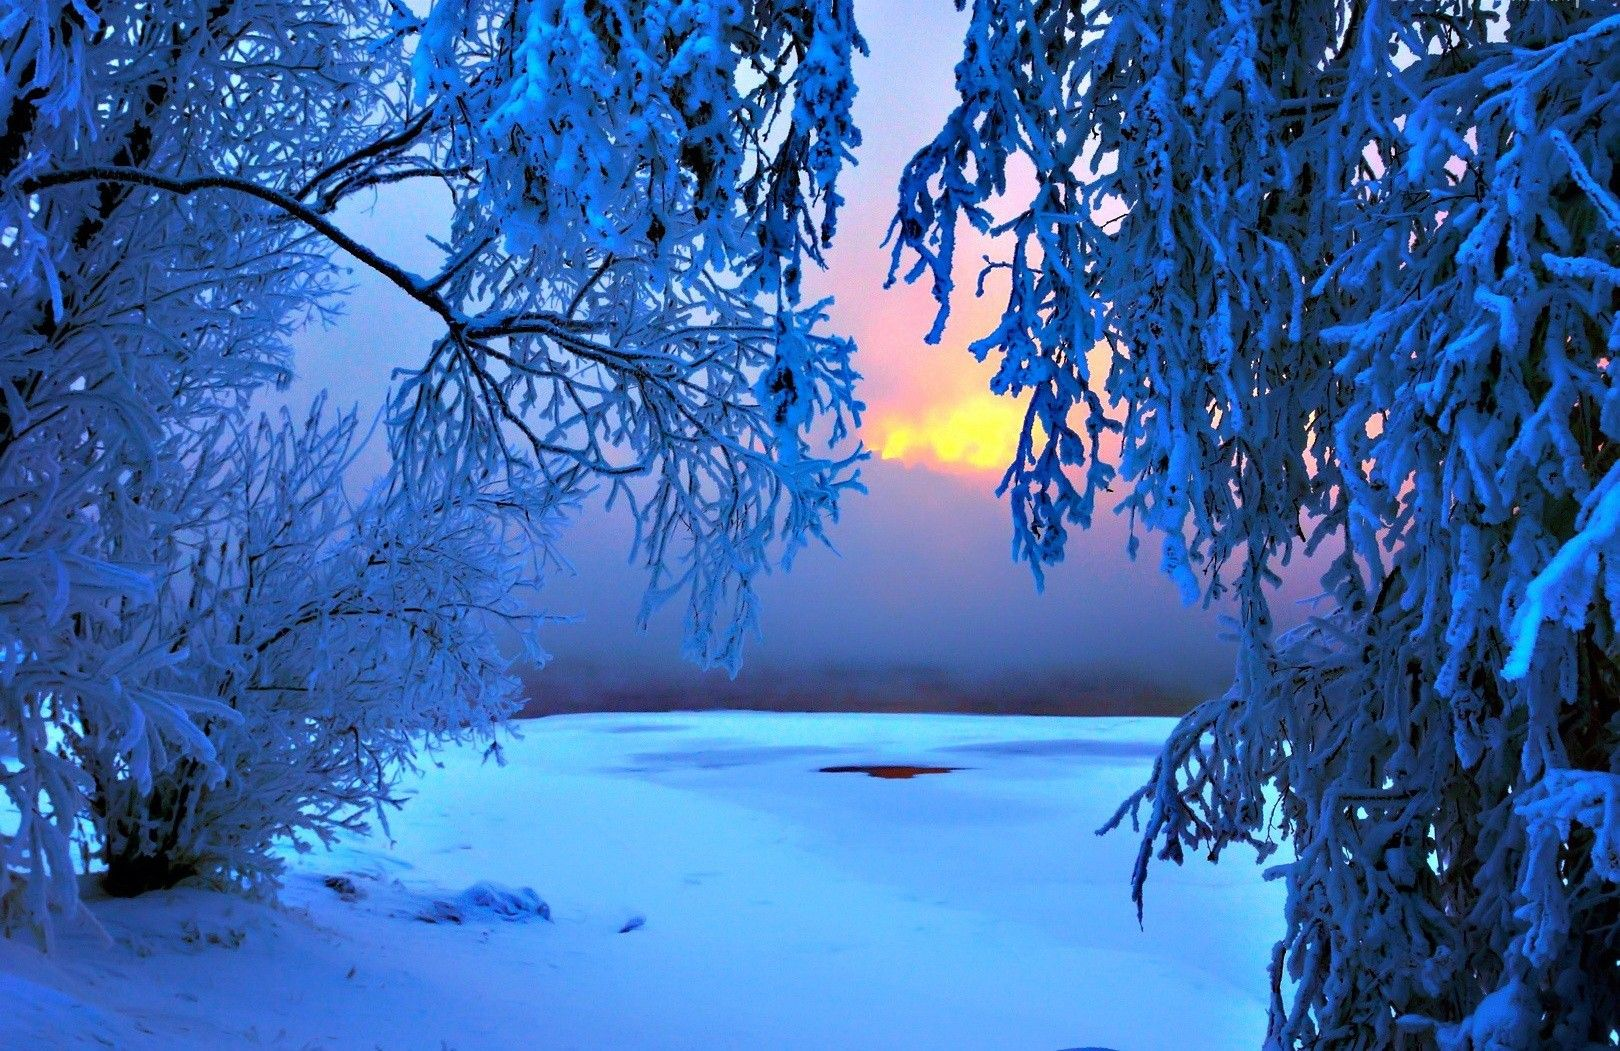 Winter-frost-sundow-glow-amazing-forest-branches-sunrise